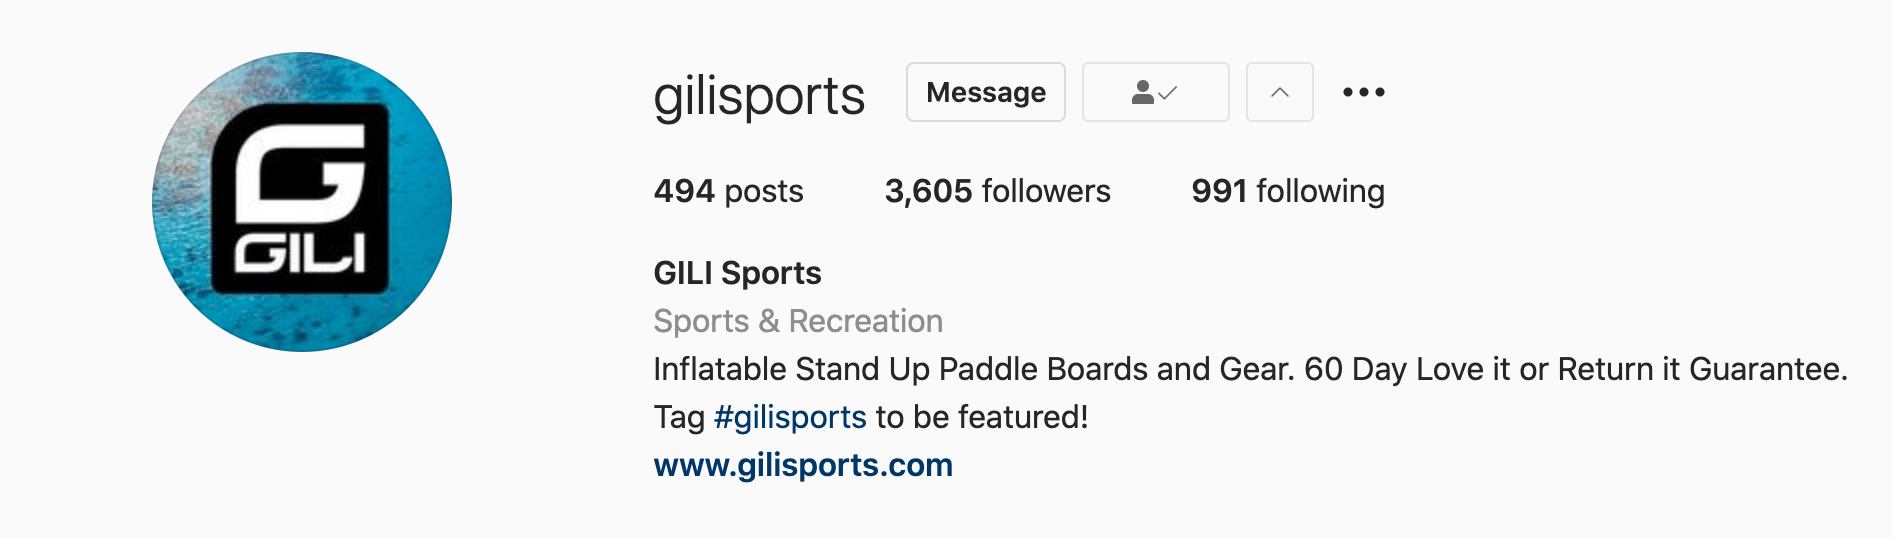 GILI a company that manufactures inflatable stand-up paddleboards